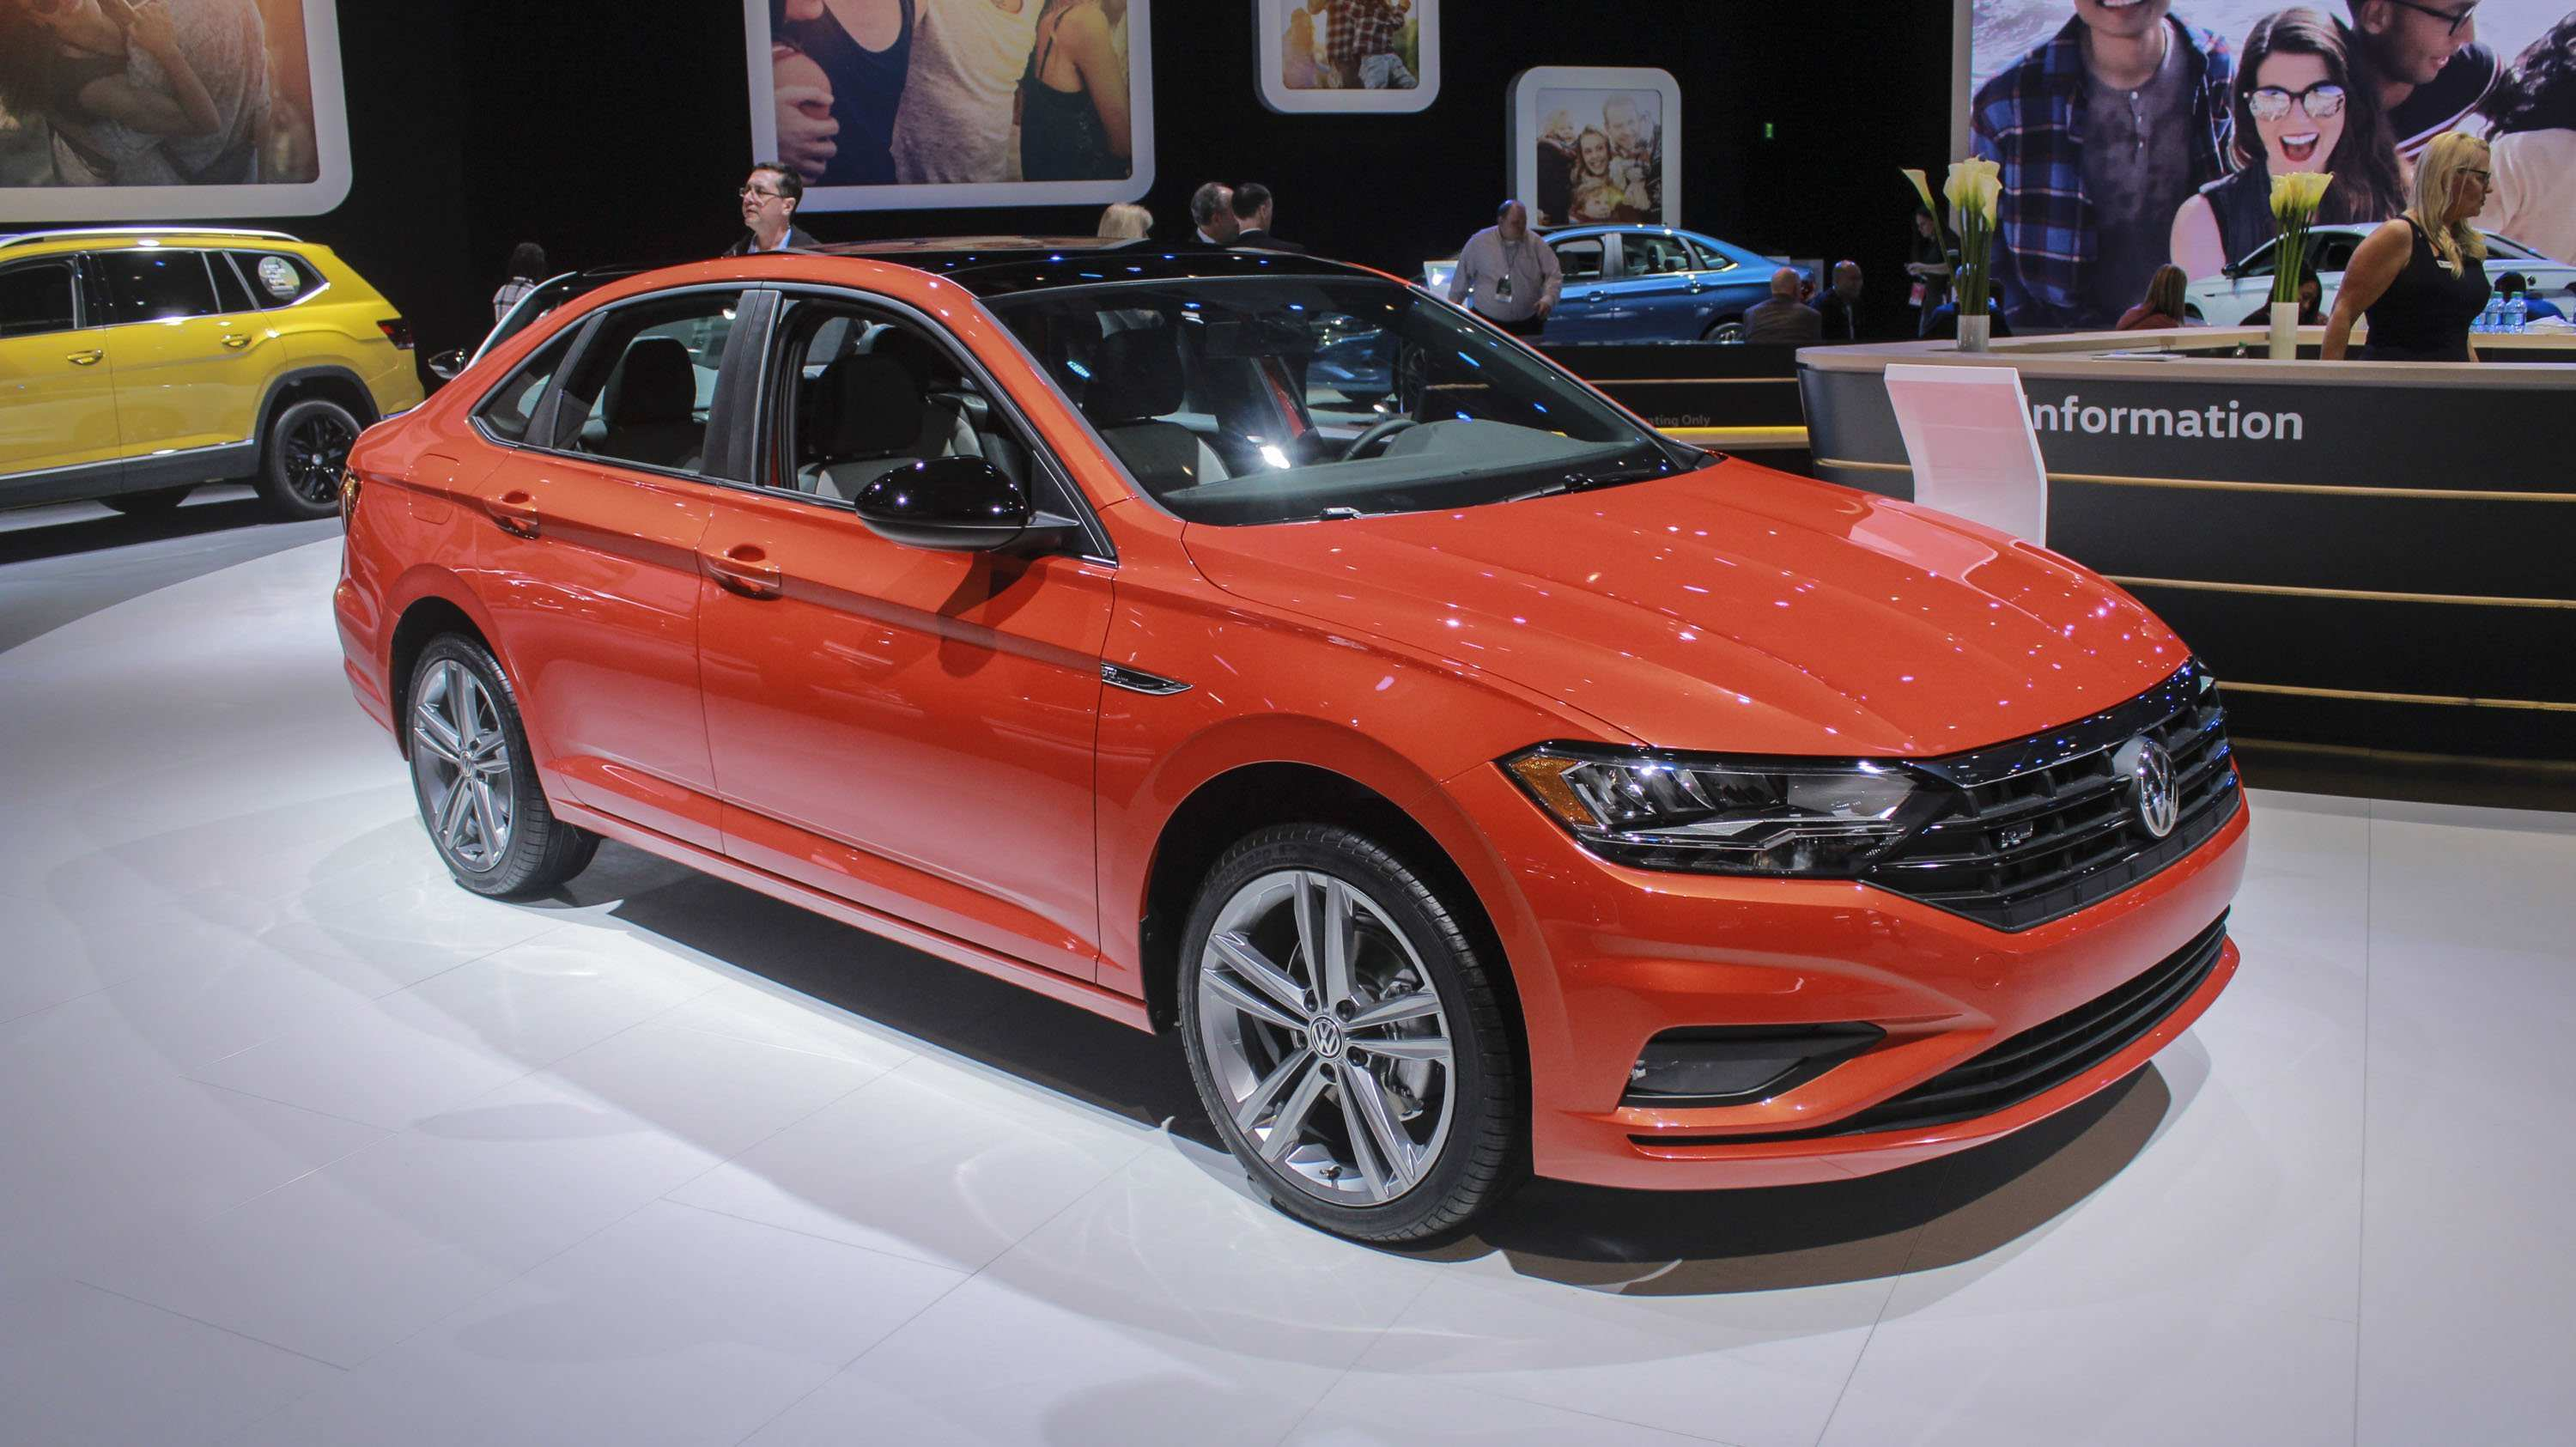 70 New Best Volkswagen R Line Jetta 2019 Exterior Spesification with Best Volkswagen R Line Jetta 2019 Exterior